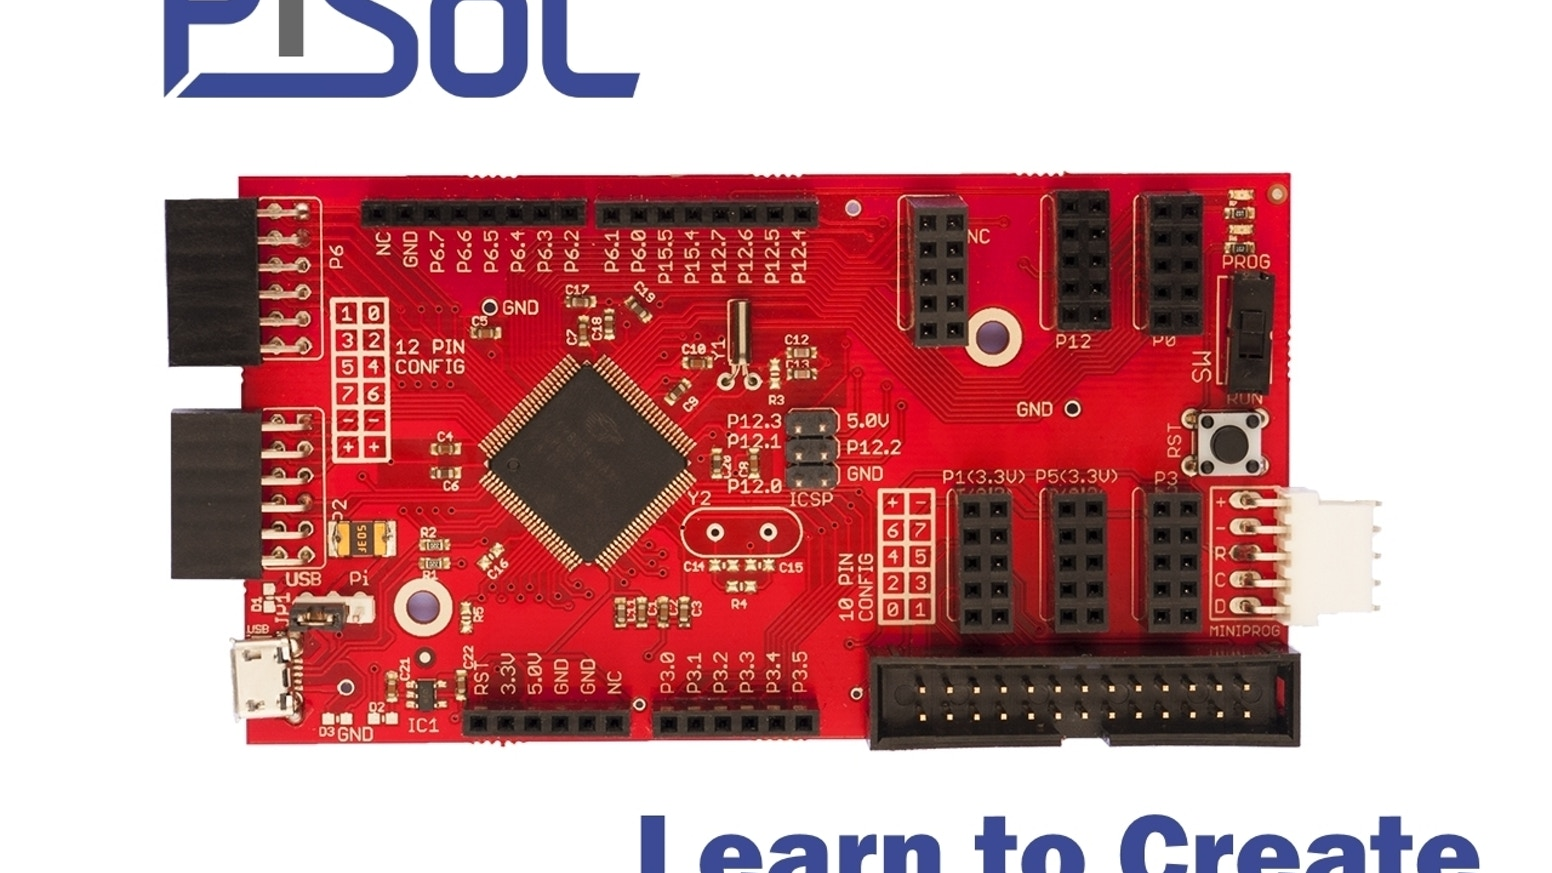 Pisoc Learn To Create By Embedit Electronics Kickstarter Embedded Systems Blog Pic Microcontroller Based Electronic Lock The Is An Open Source Development Platform Which Gives Each Person A Unique Opportunity